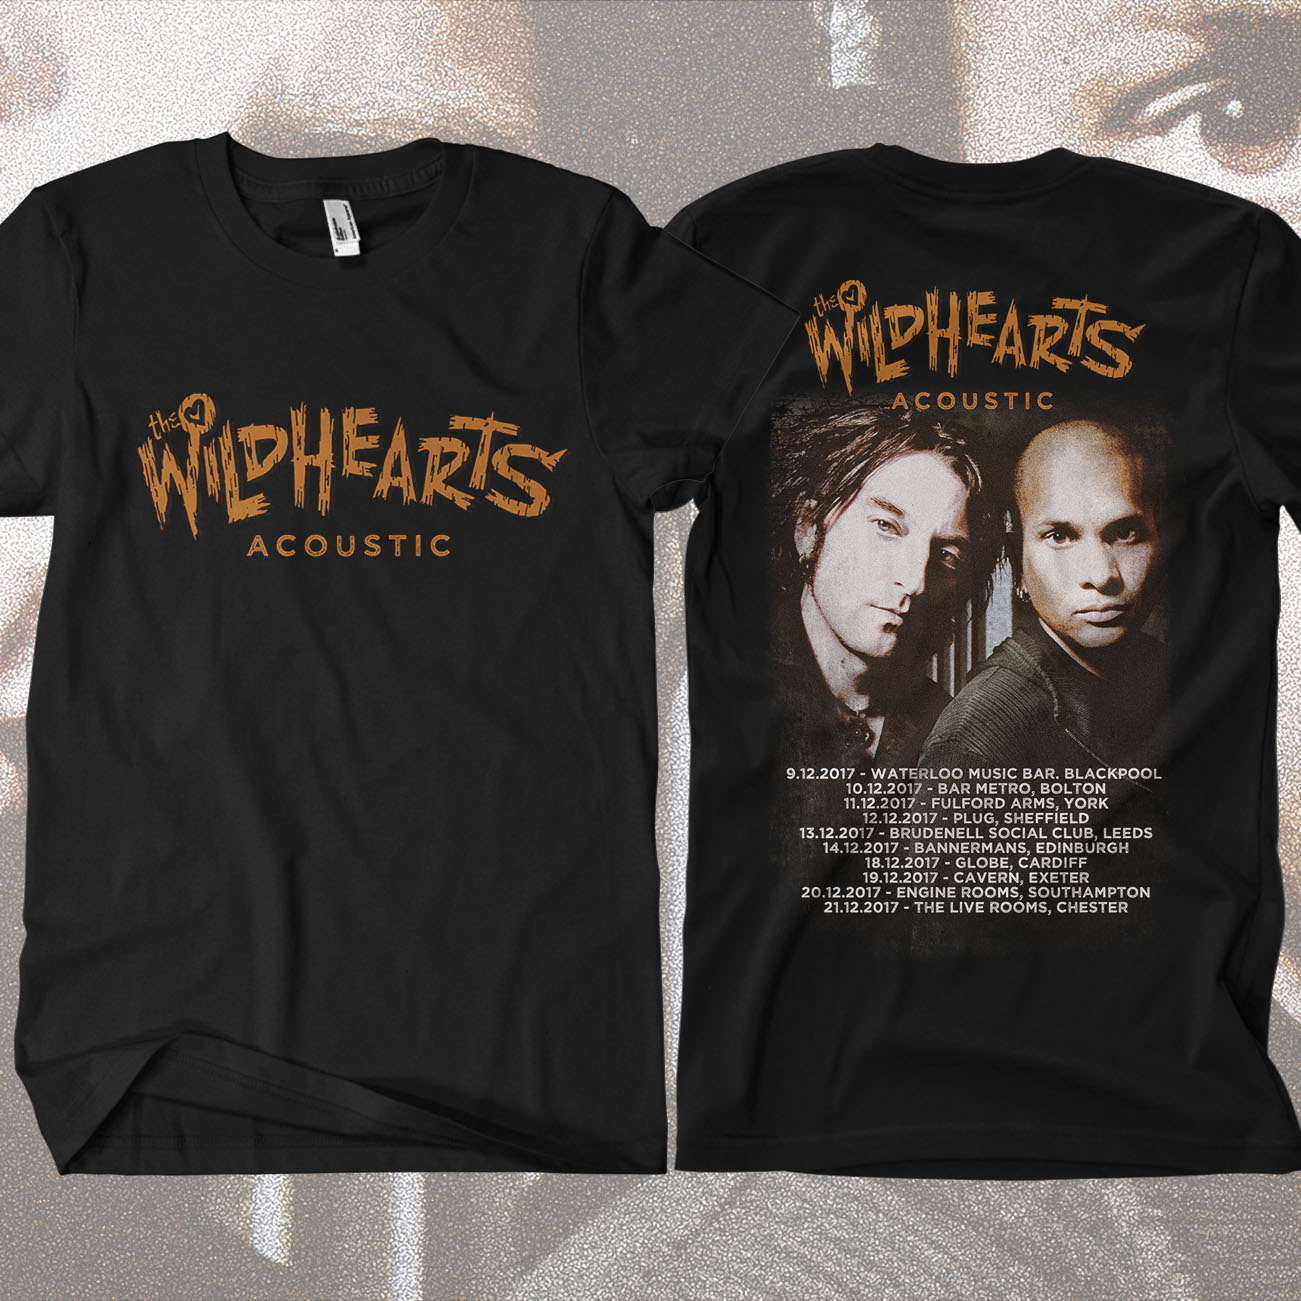 The Wildhearts - 2017 Acoustic Tour Shirt - The Wildhearts